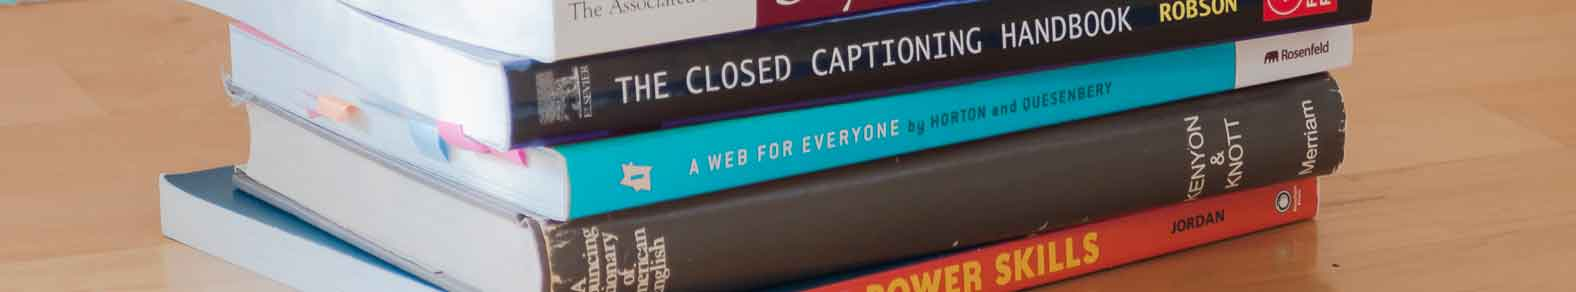 closed captioning books